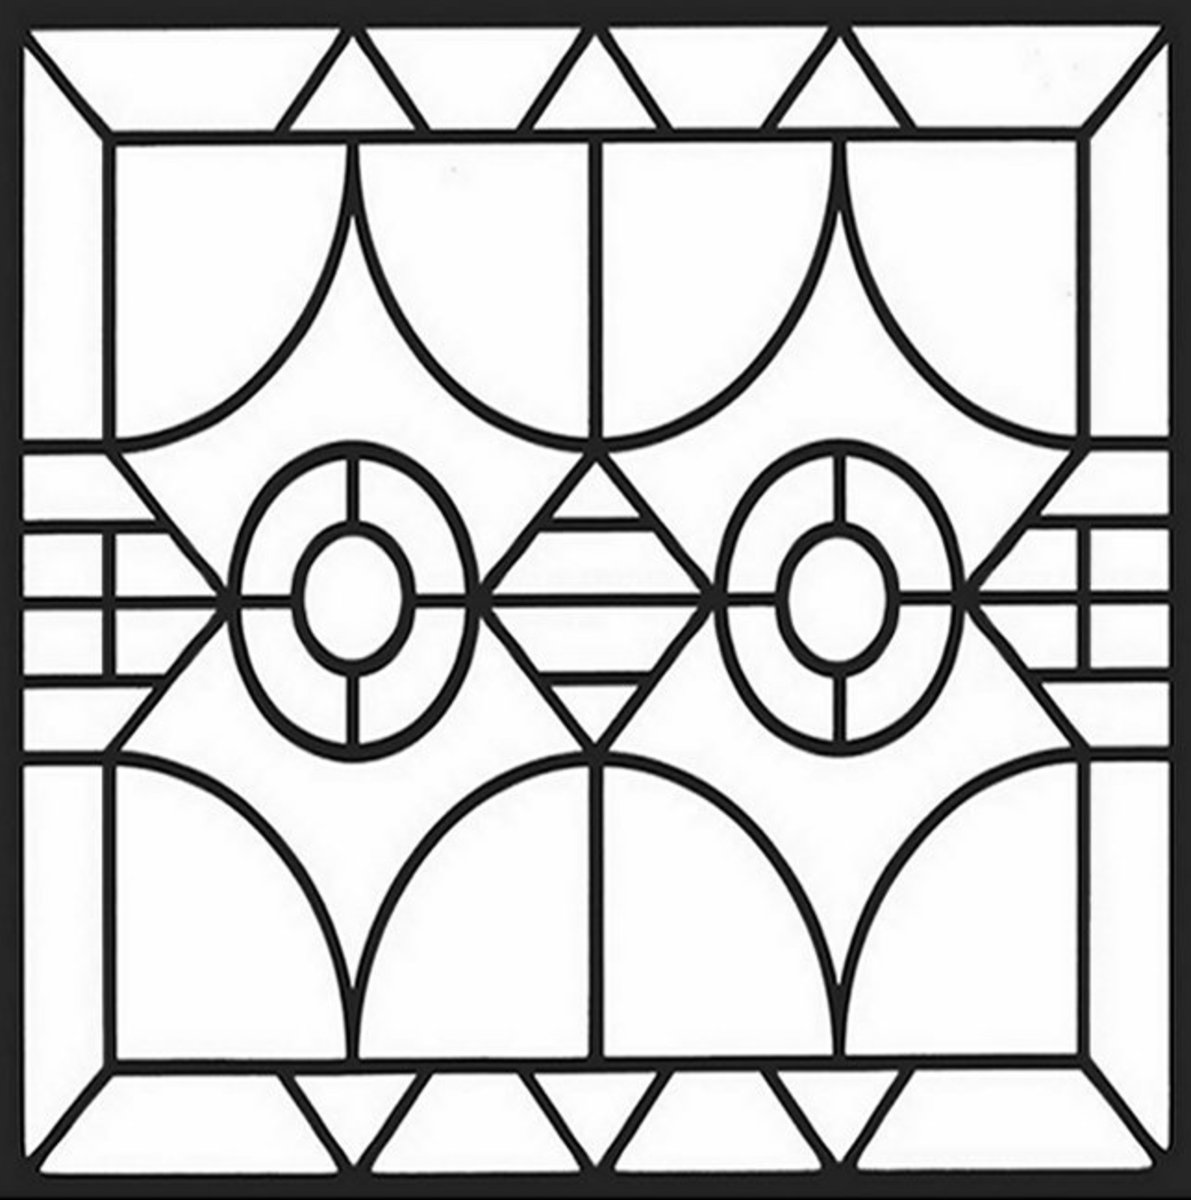 coloring pages geometric staind glass - photo#11